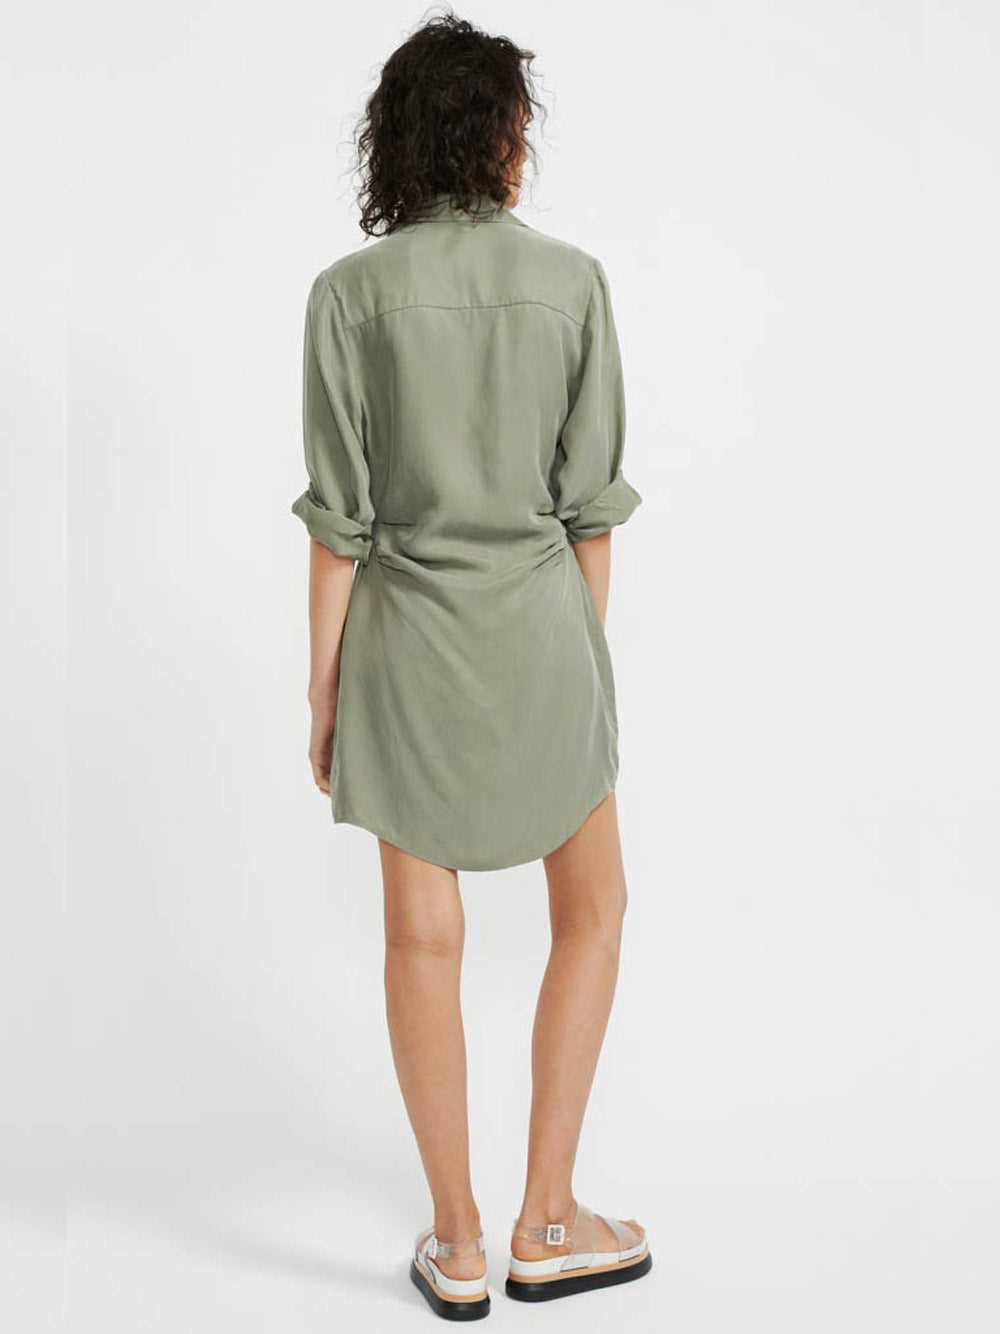 STAPLE THE LABEL Harper Mini Shirt Dress - Khaki